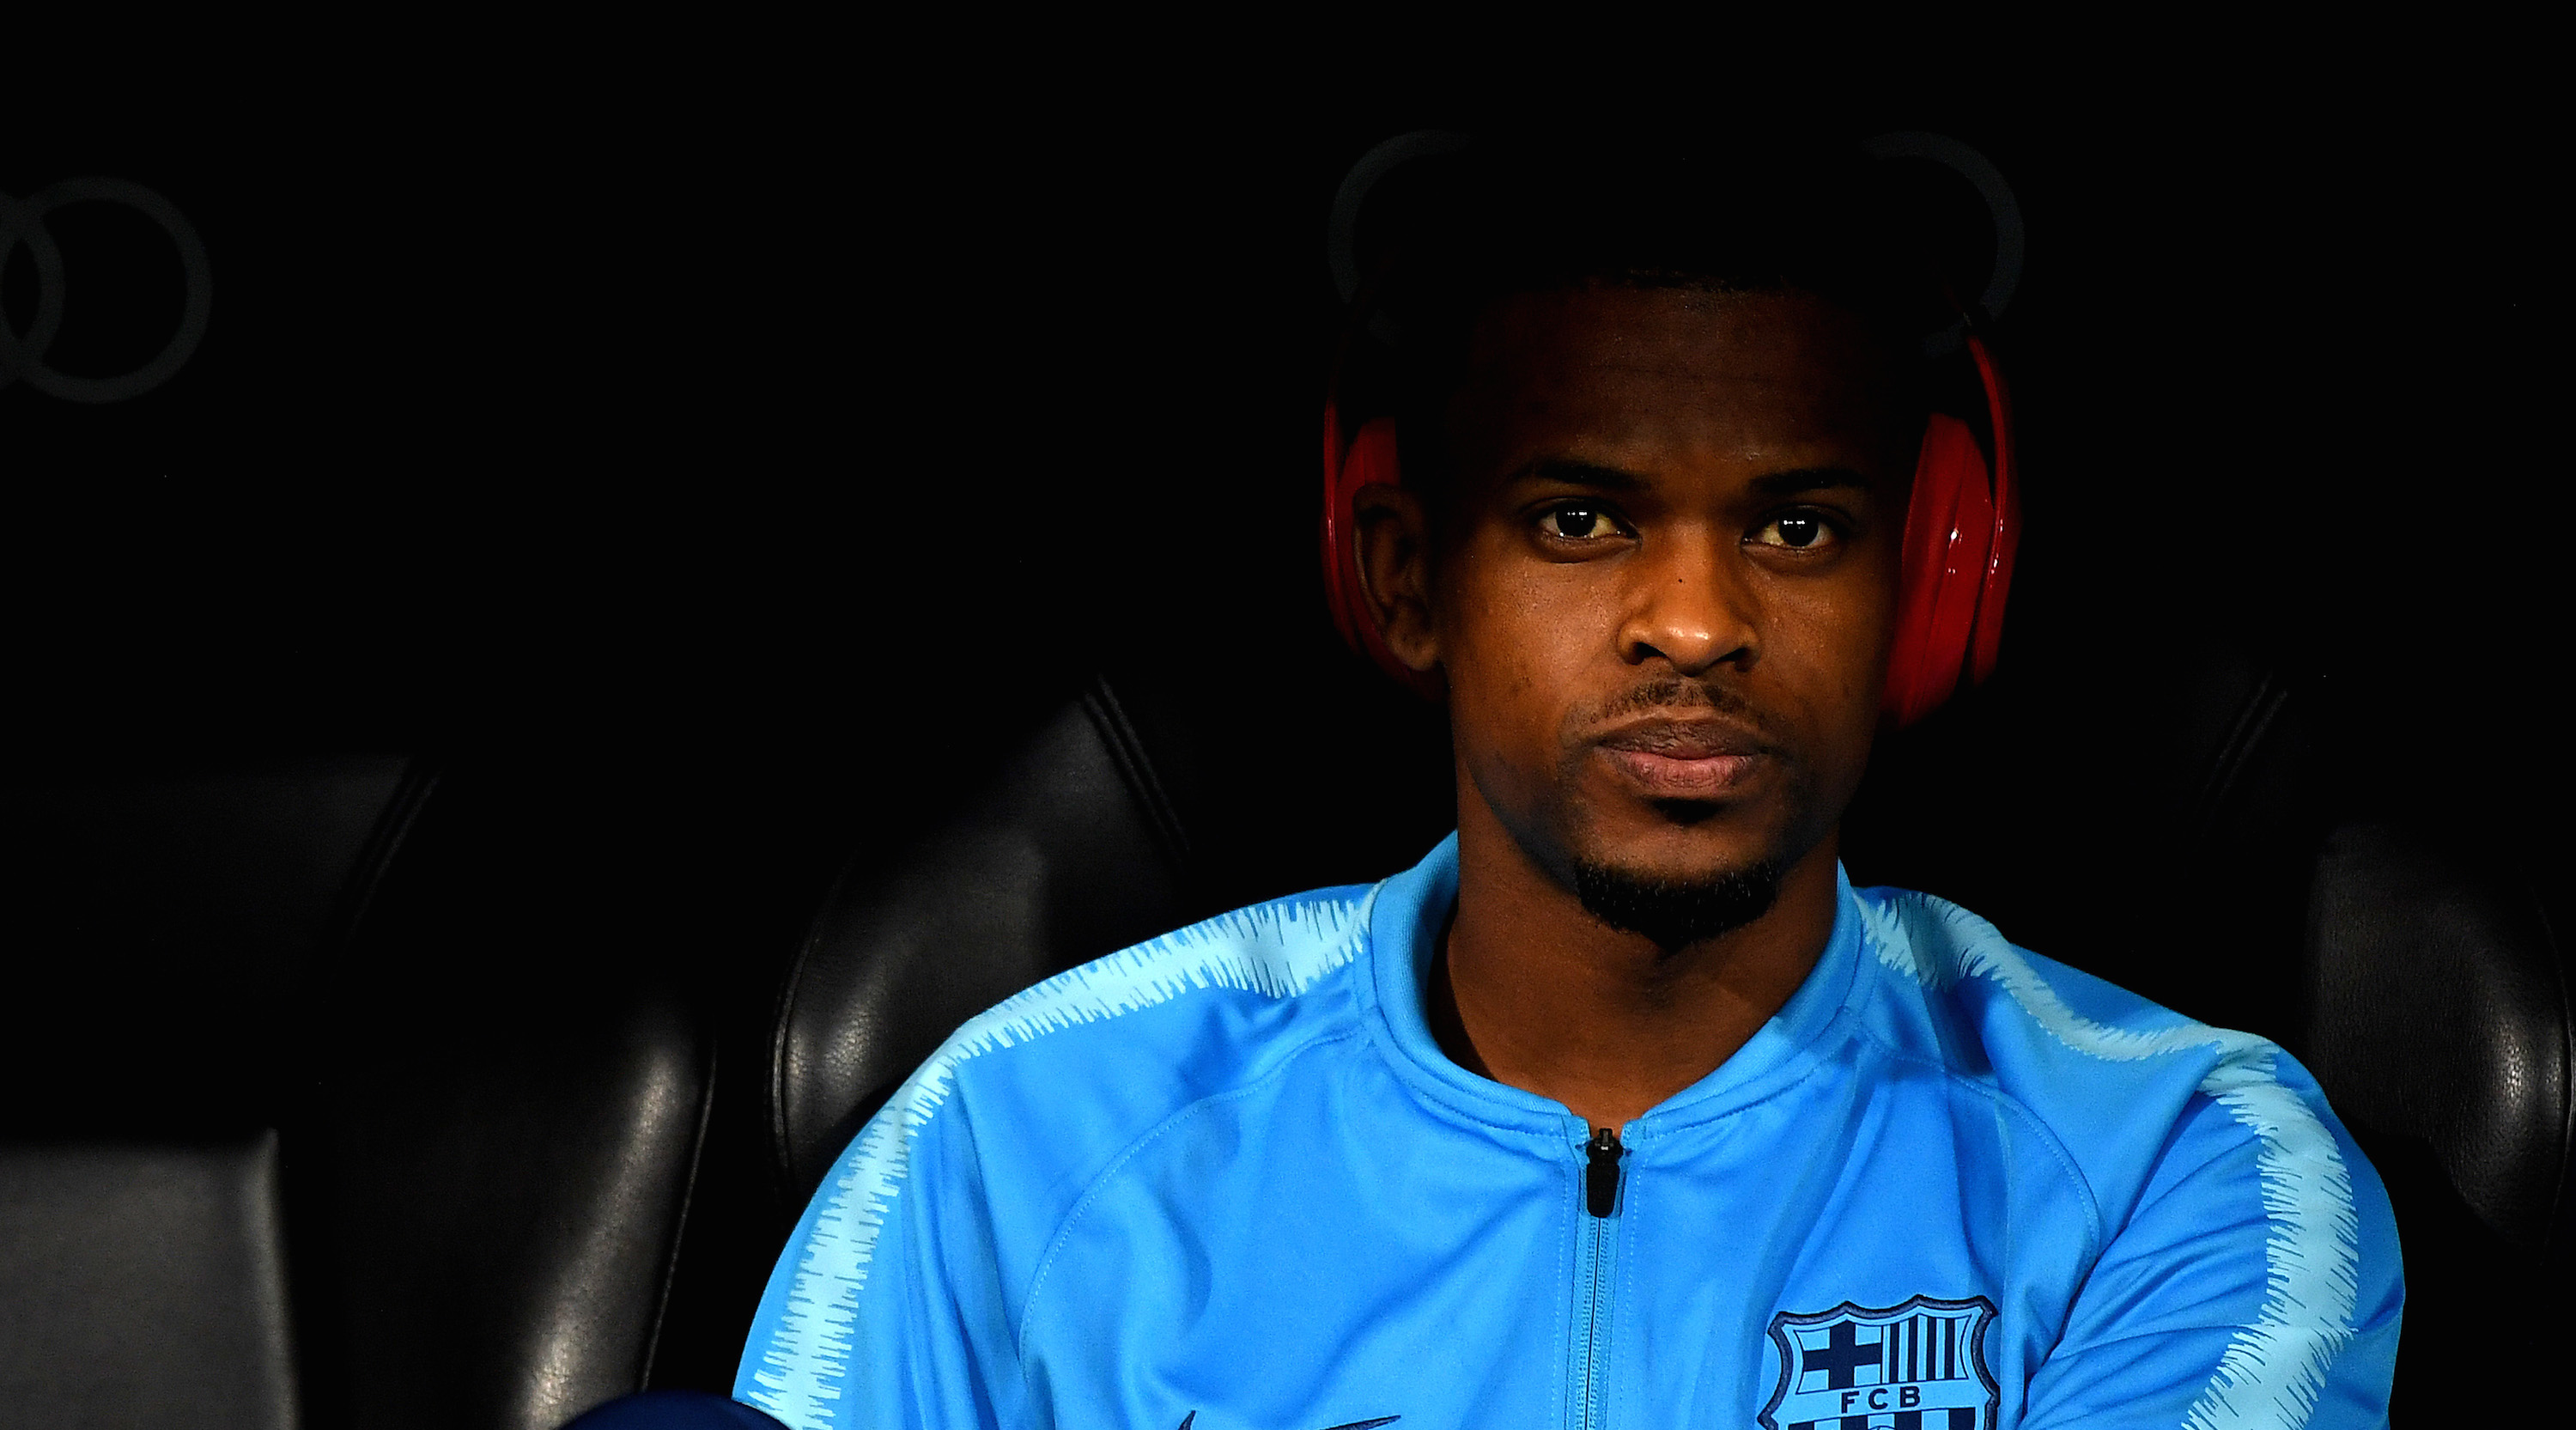 MADRID, SPAIN - MARCH 02: Nelson Semedo of Barcelona sits on the bench ahead of the La Liga match between Real Madrid CF and FC Barcelona at Estadio Santiago Bernabeu on March 02, 2019 in Madrid, Spain. (Photo by David Ramos/Getty Images)